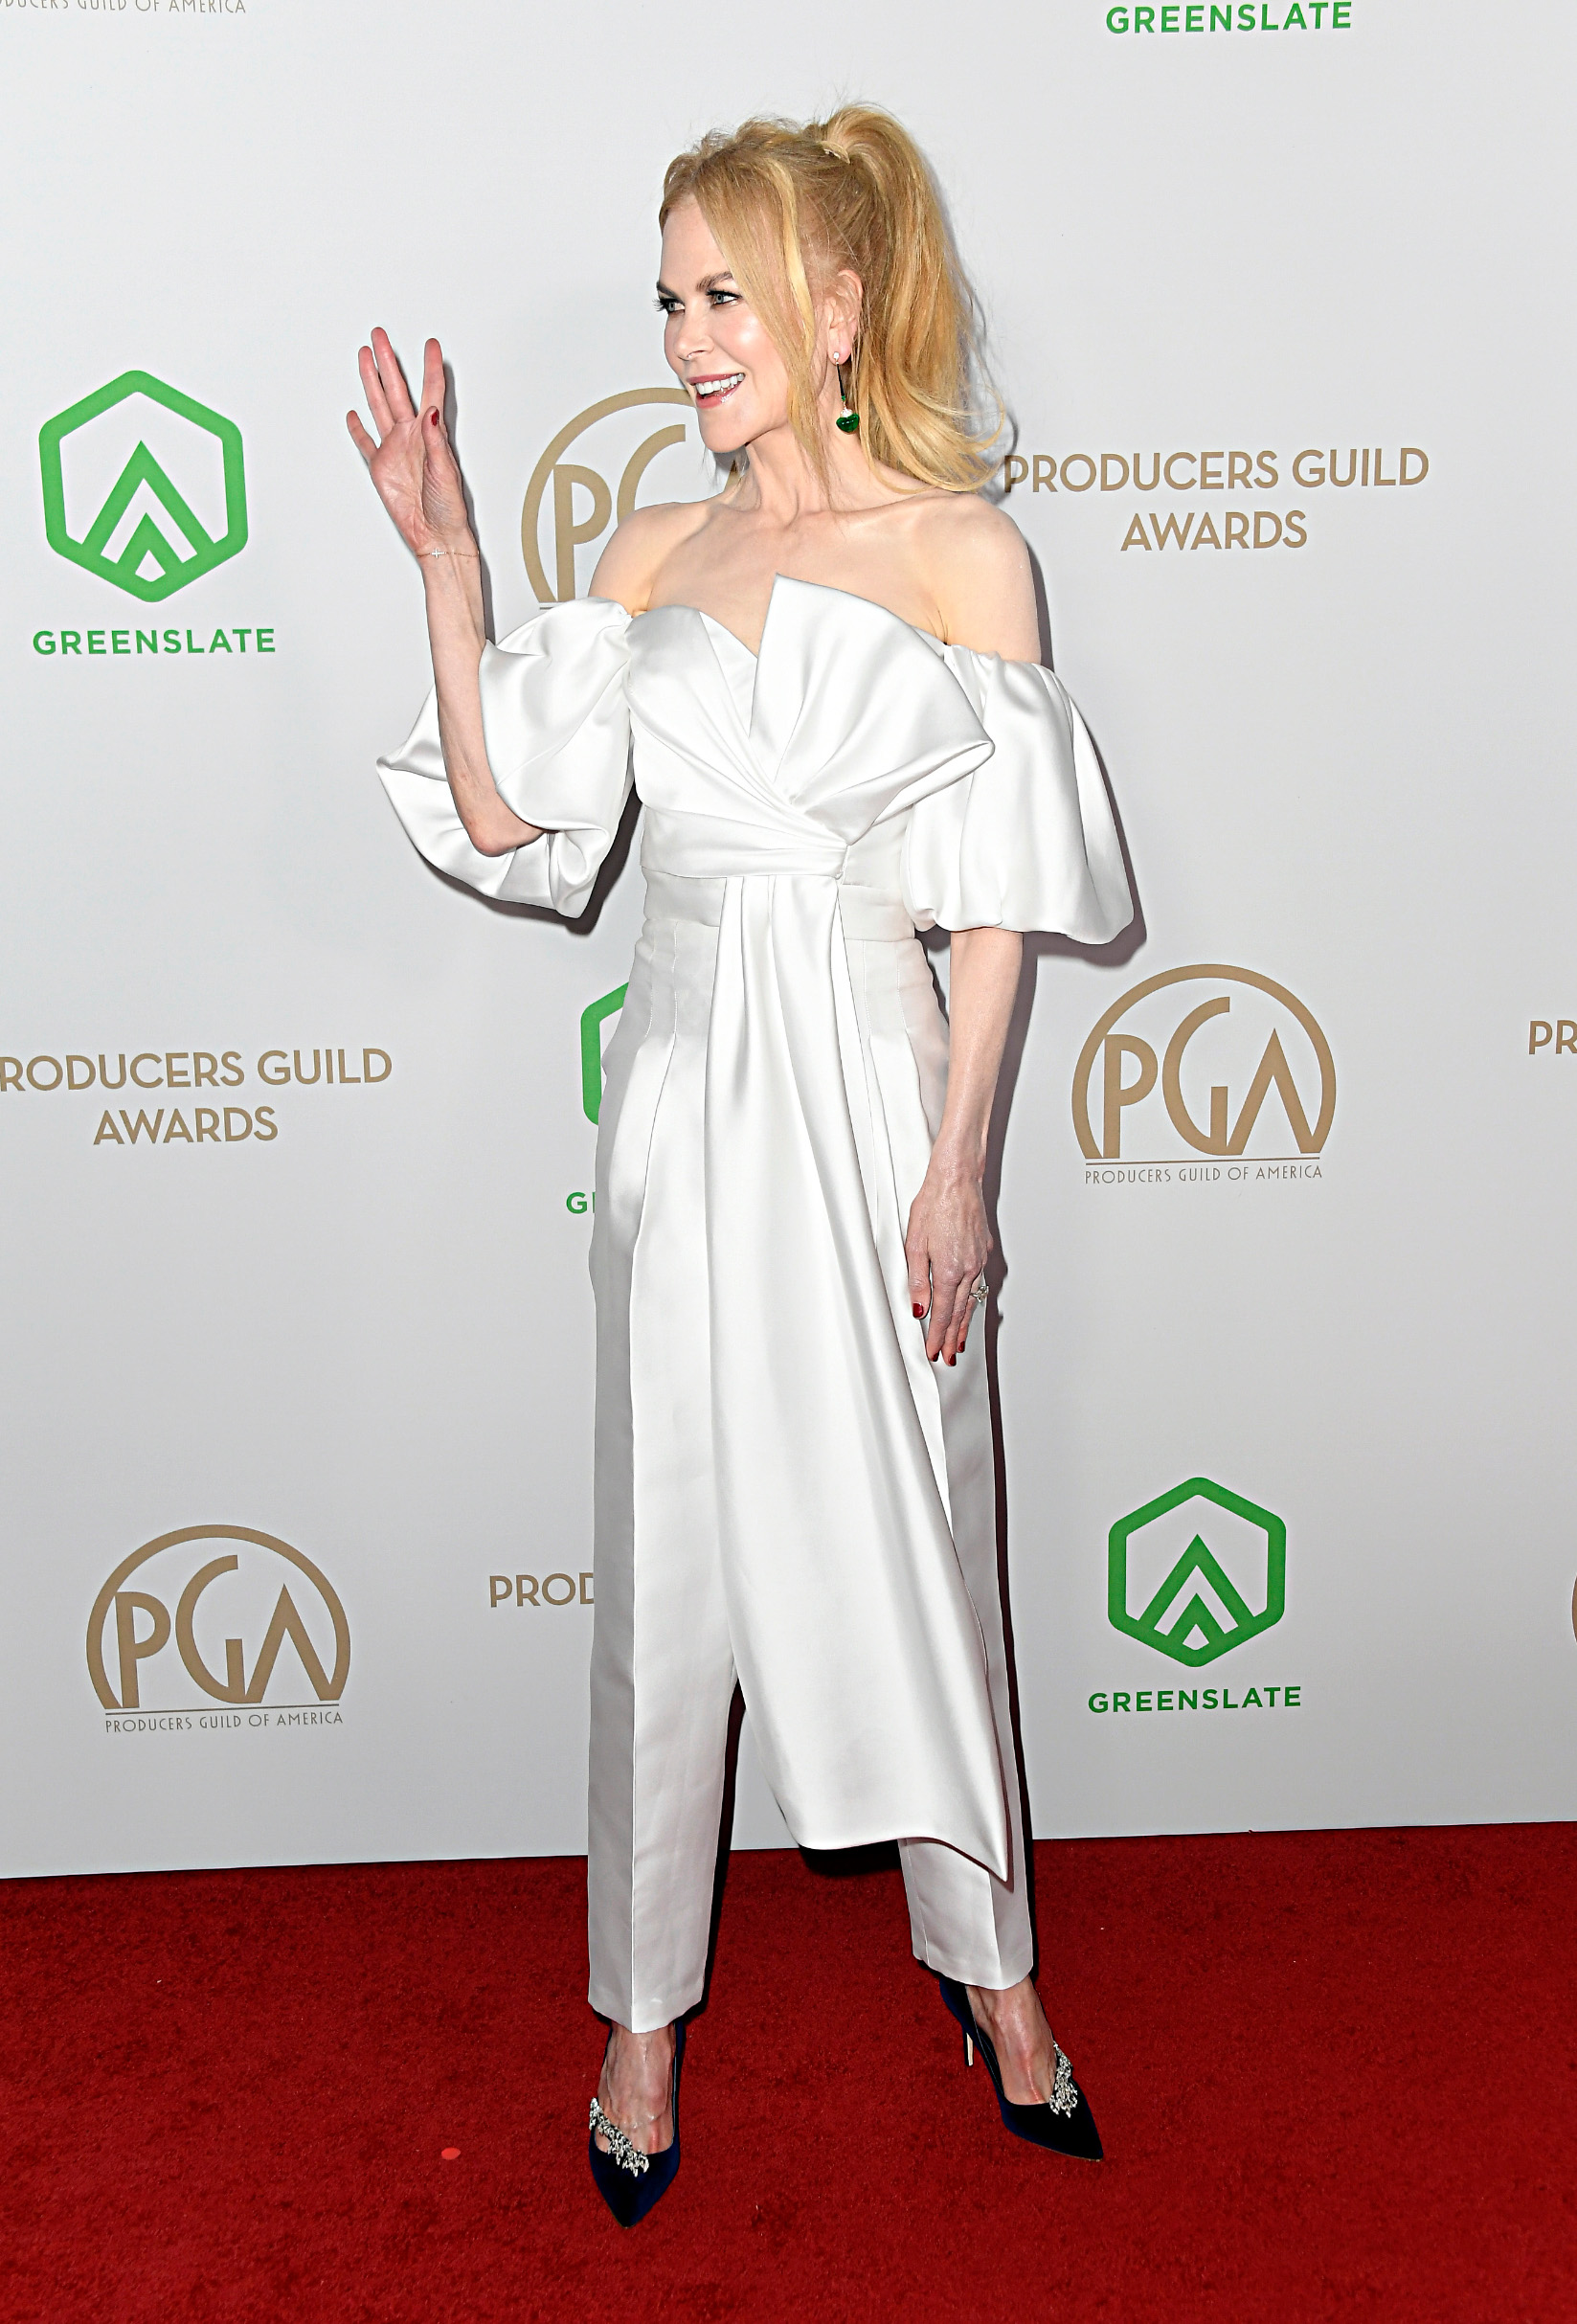 LOS ANGELES, CALIFORNIA - JANUARY 18: Nicole Kidman attends the 31st Annual Producers Guild Awards at Hollywood Palladium on January 18, 2020 in Los Angeles, California. (Photo by Frazer Harrison/Getty Images)